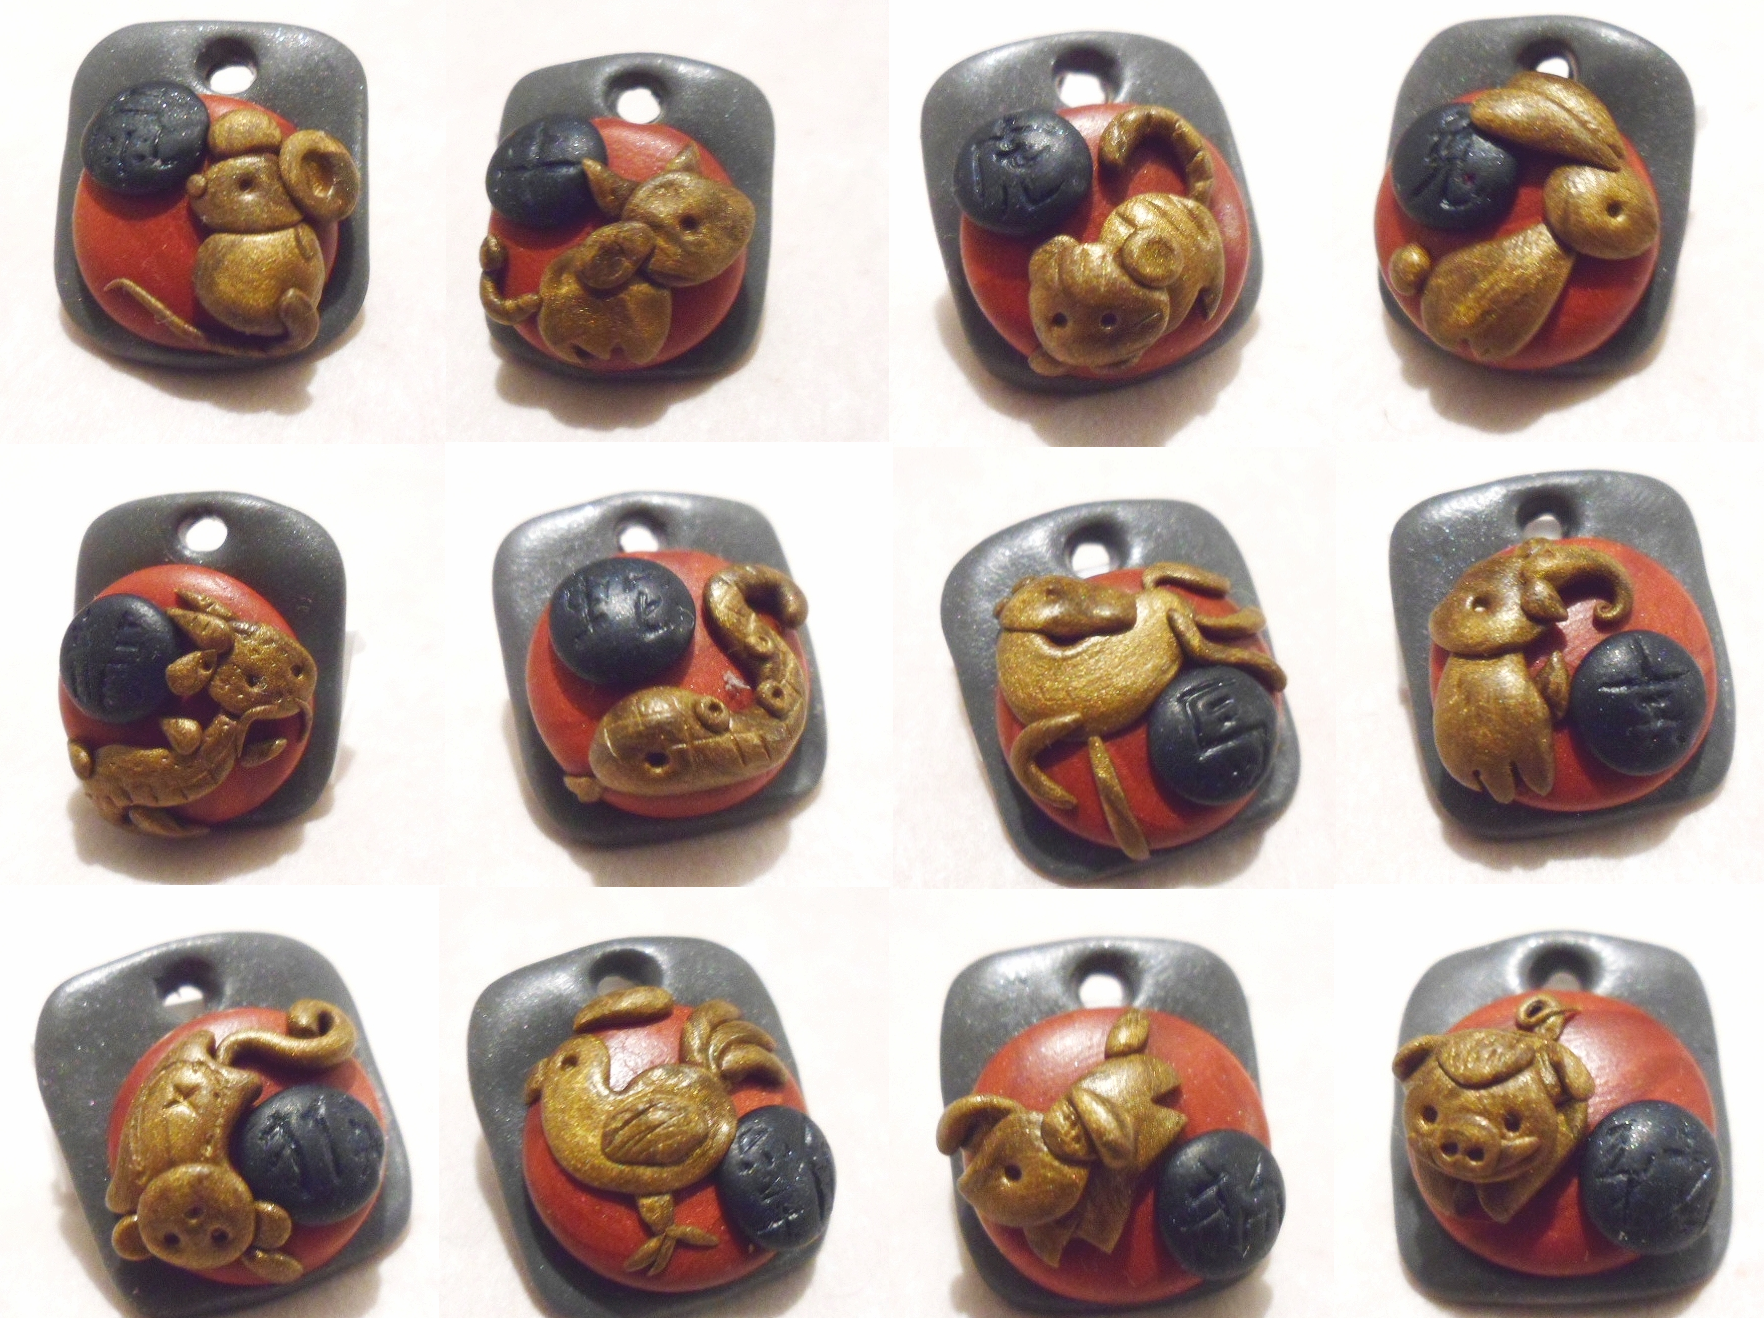 Chinese Zodiac Charms by Saru-Hime